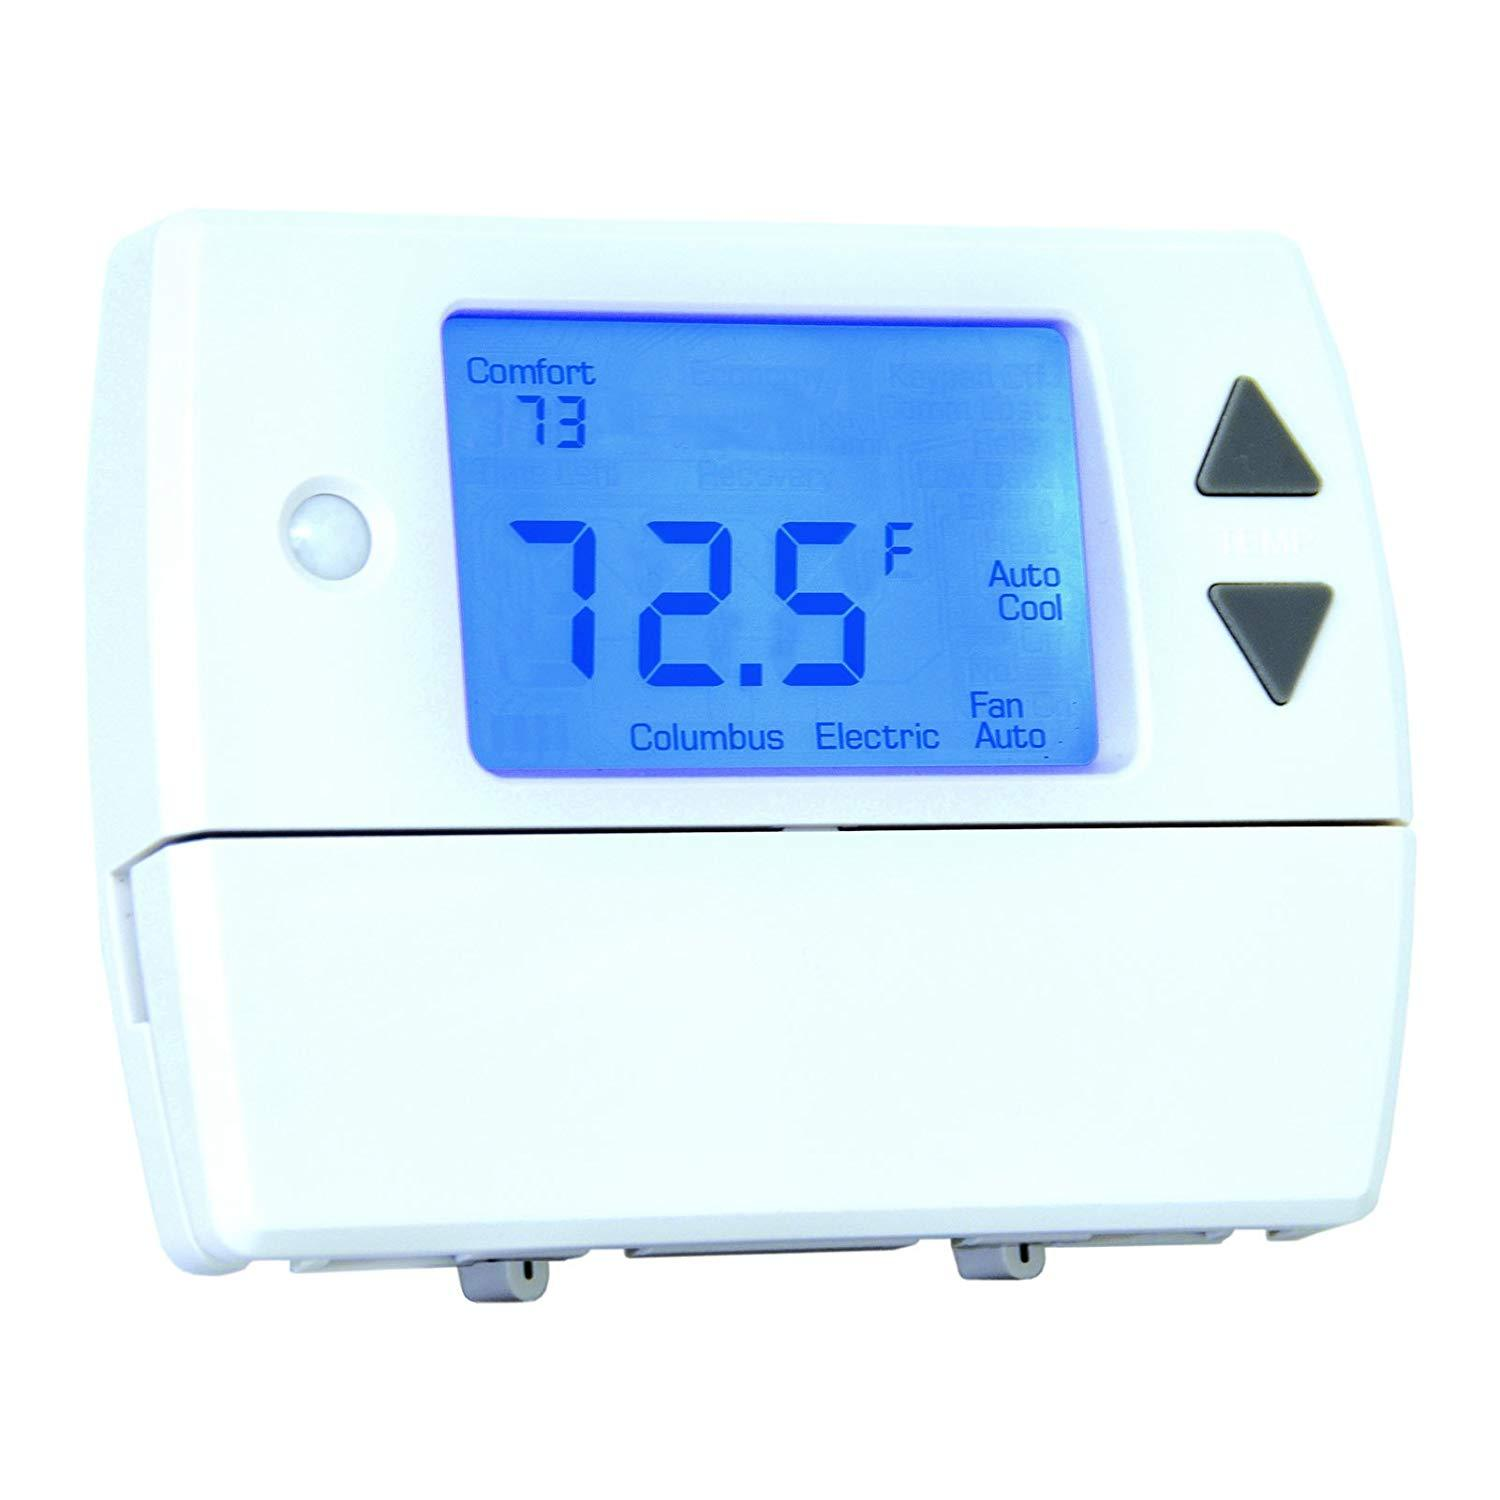 TPI RSD Series Hardwired Thermostat - RSDHW1001